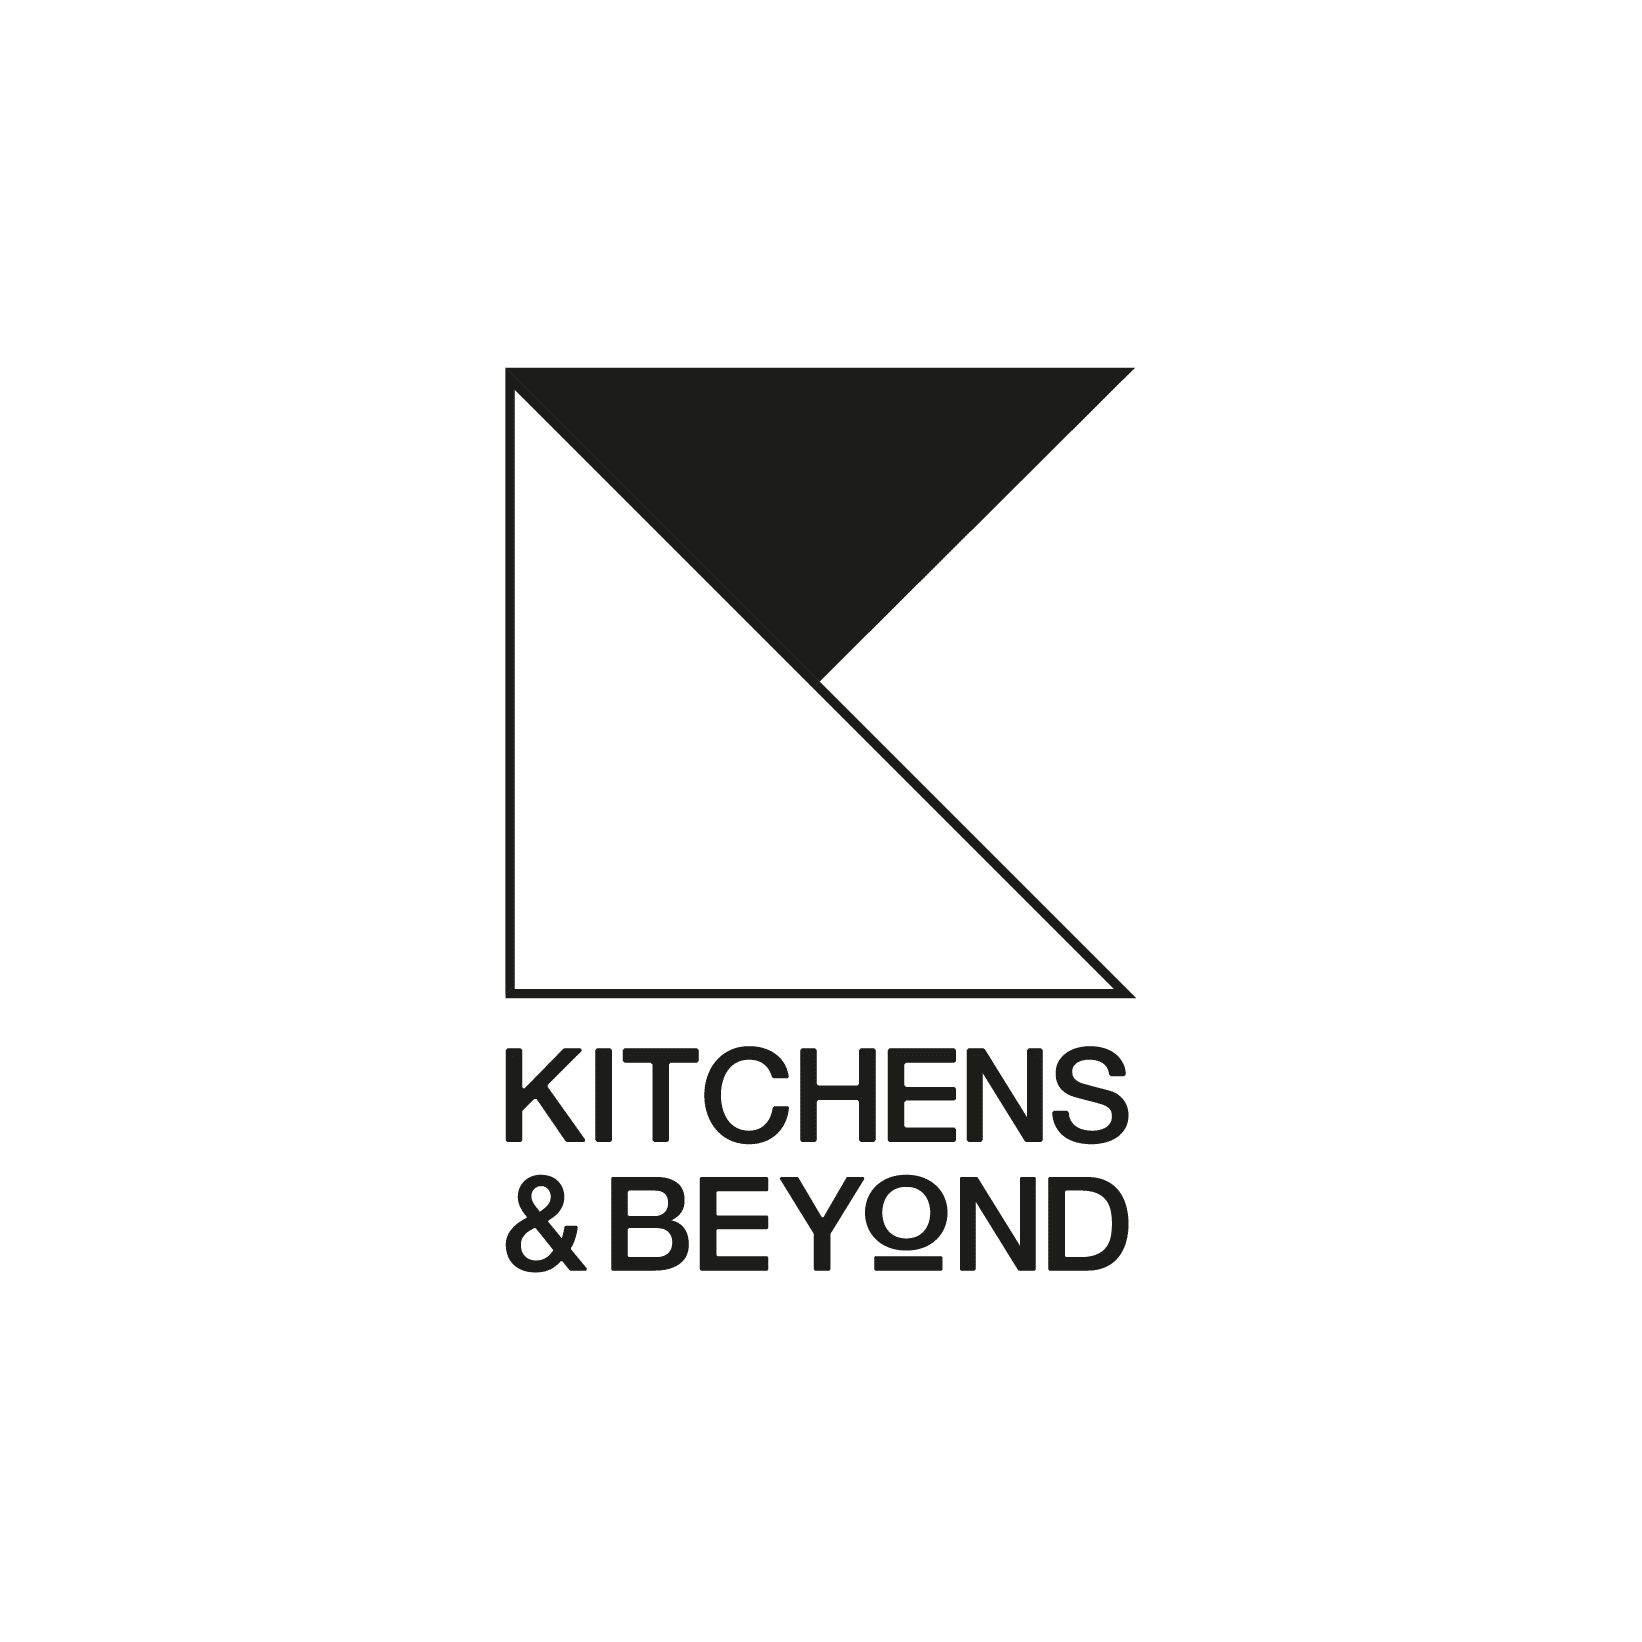 Kitchens and Beyond